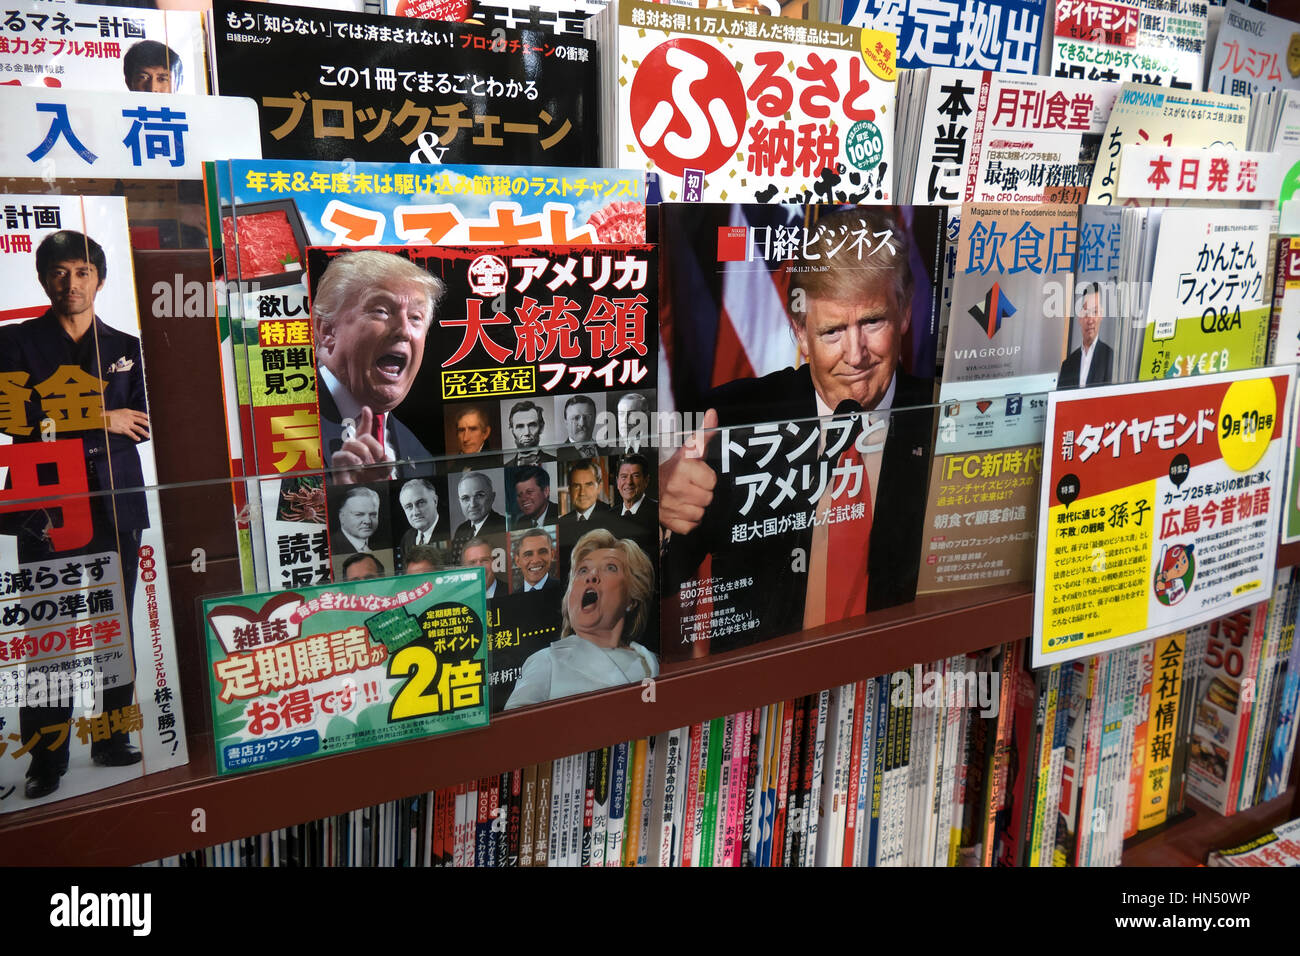 Shop, store selling comics and magazines, Hiroshima, Japan, Asia. Close-up of magazine cover with US president Donald - Stock Image